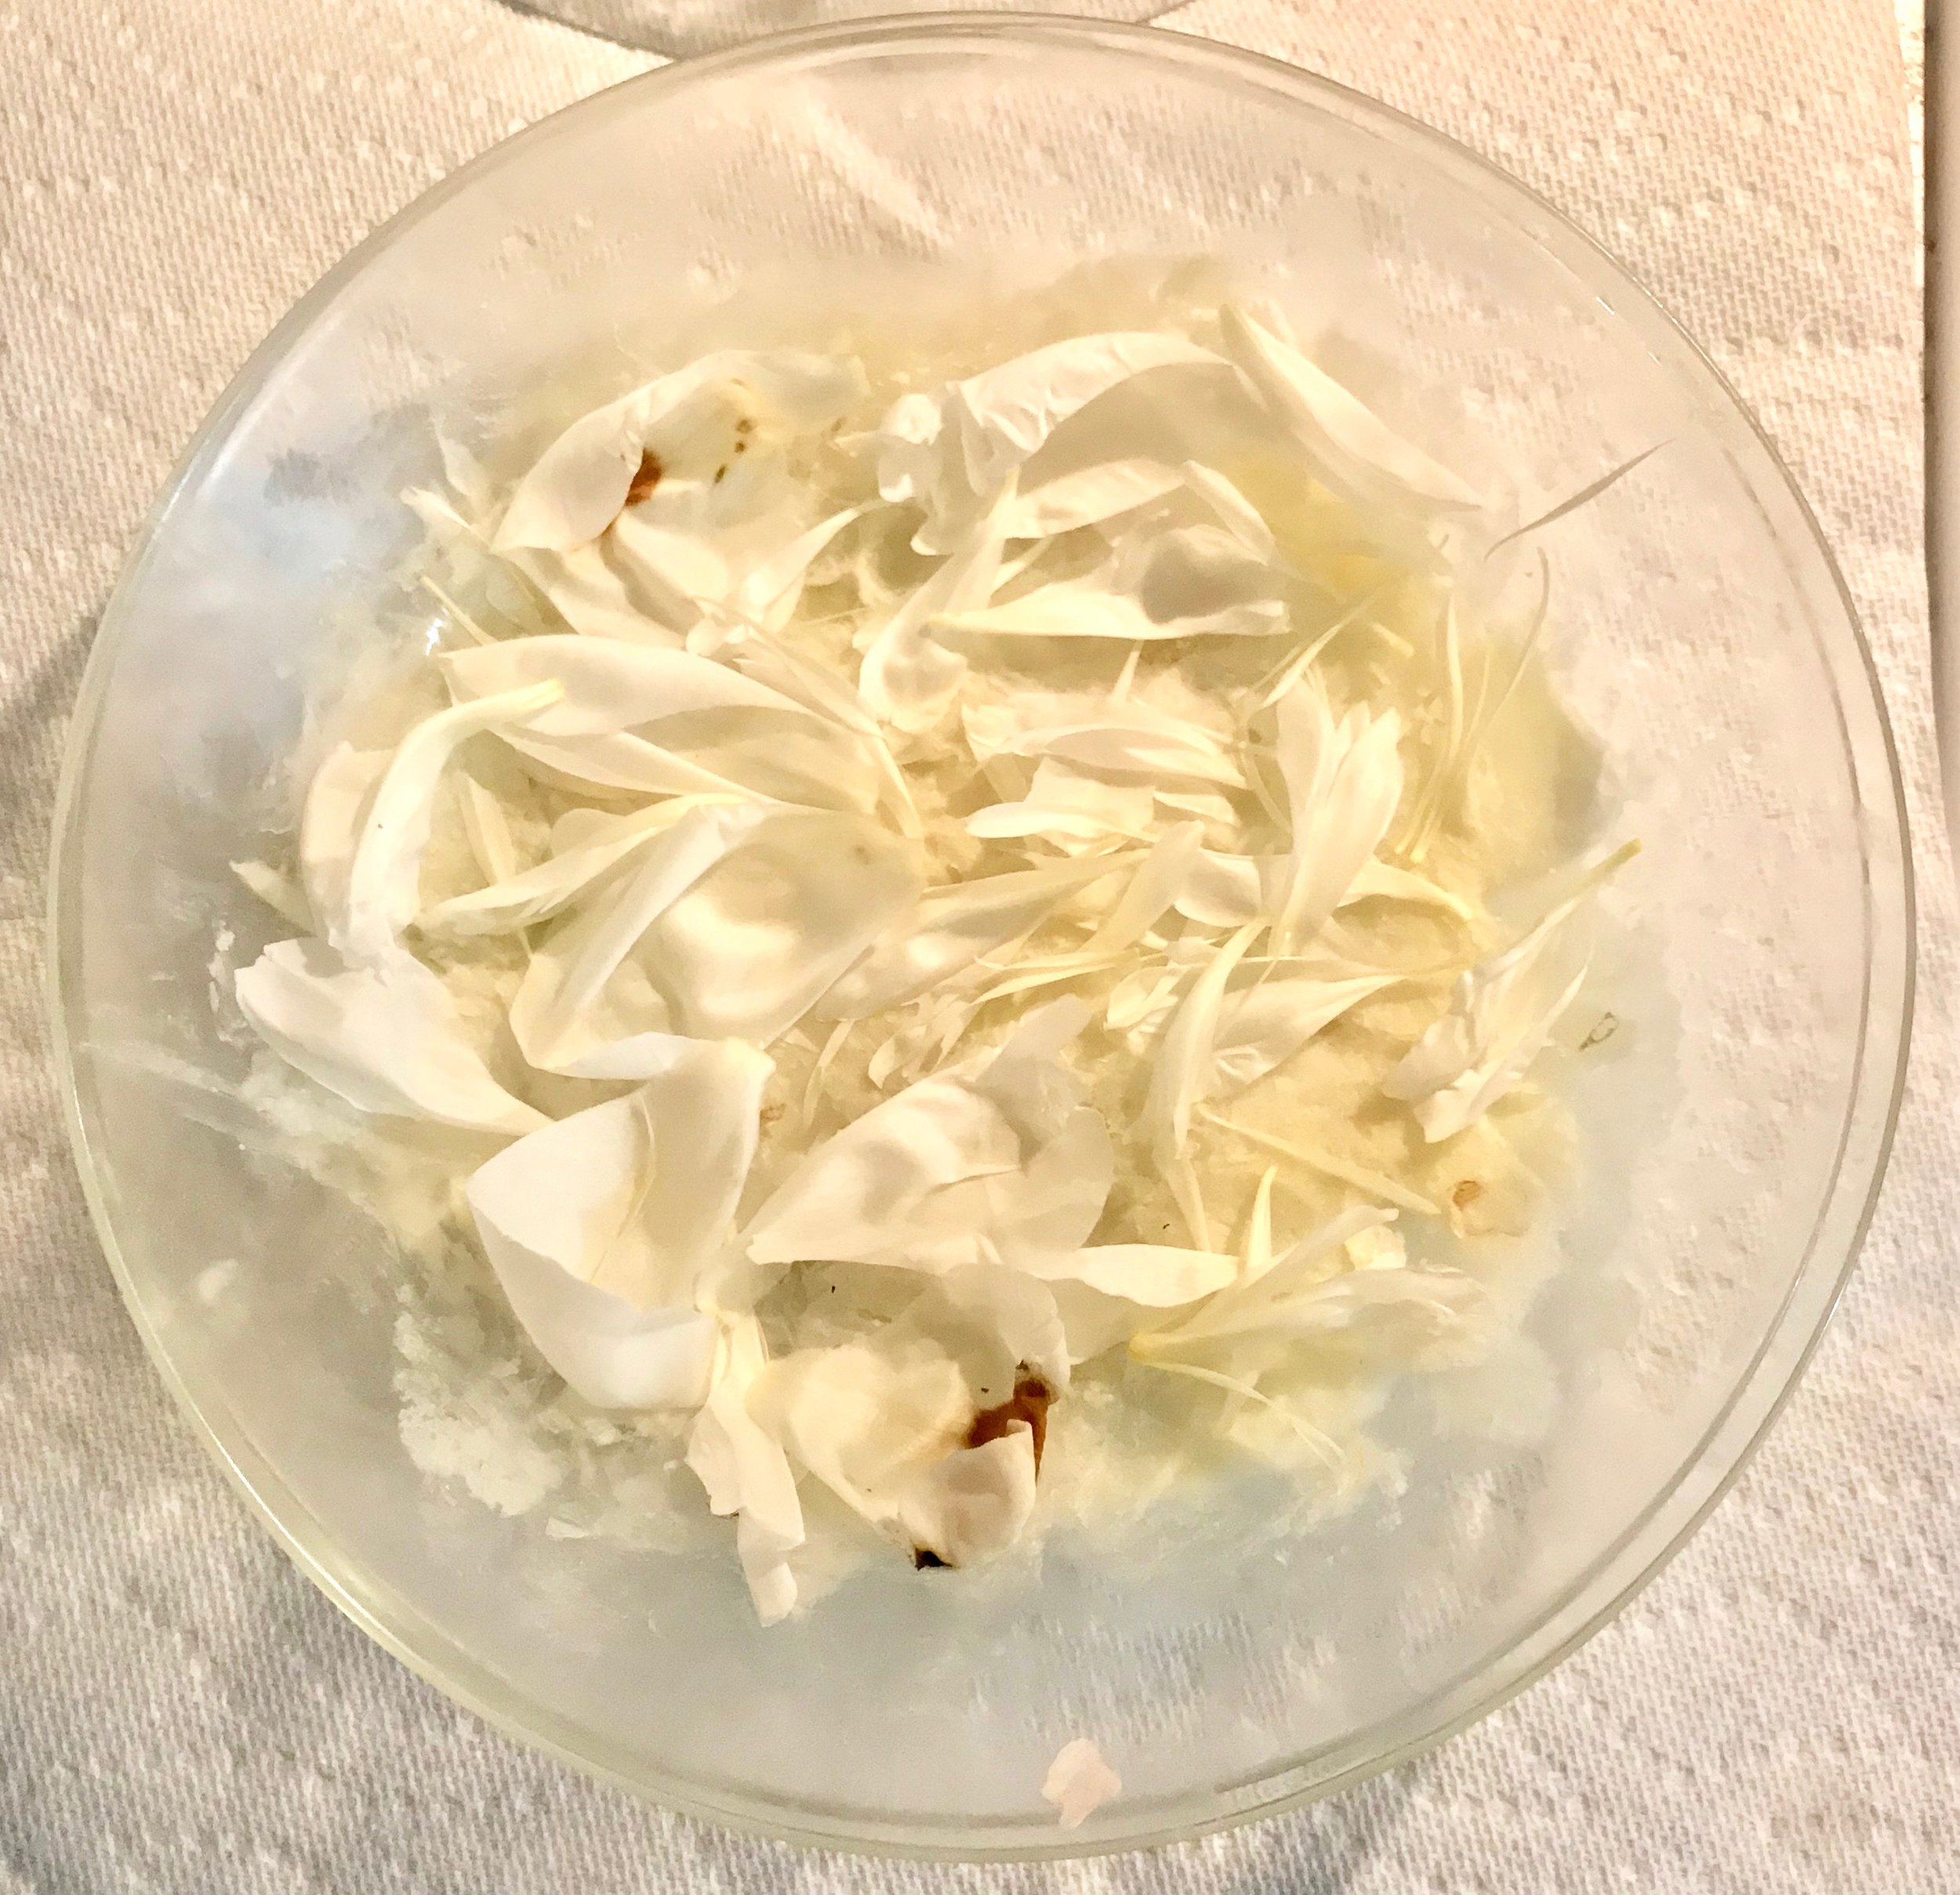 Second layer of fresh white peony petals.